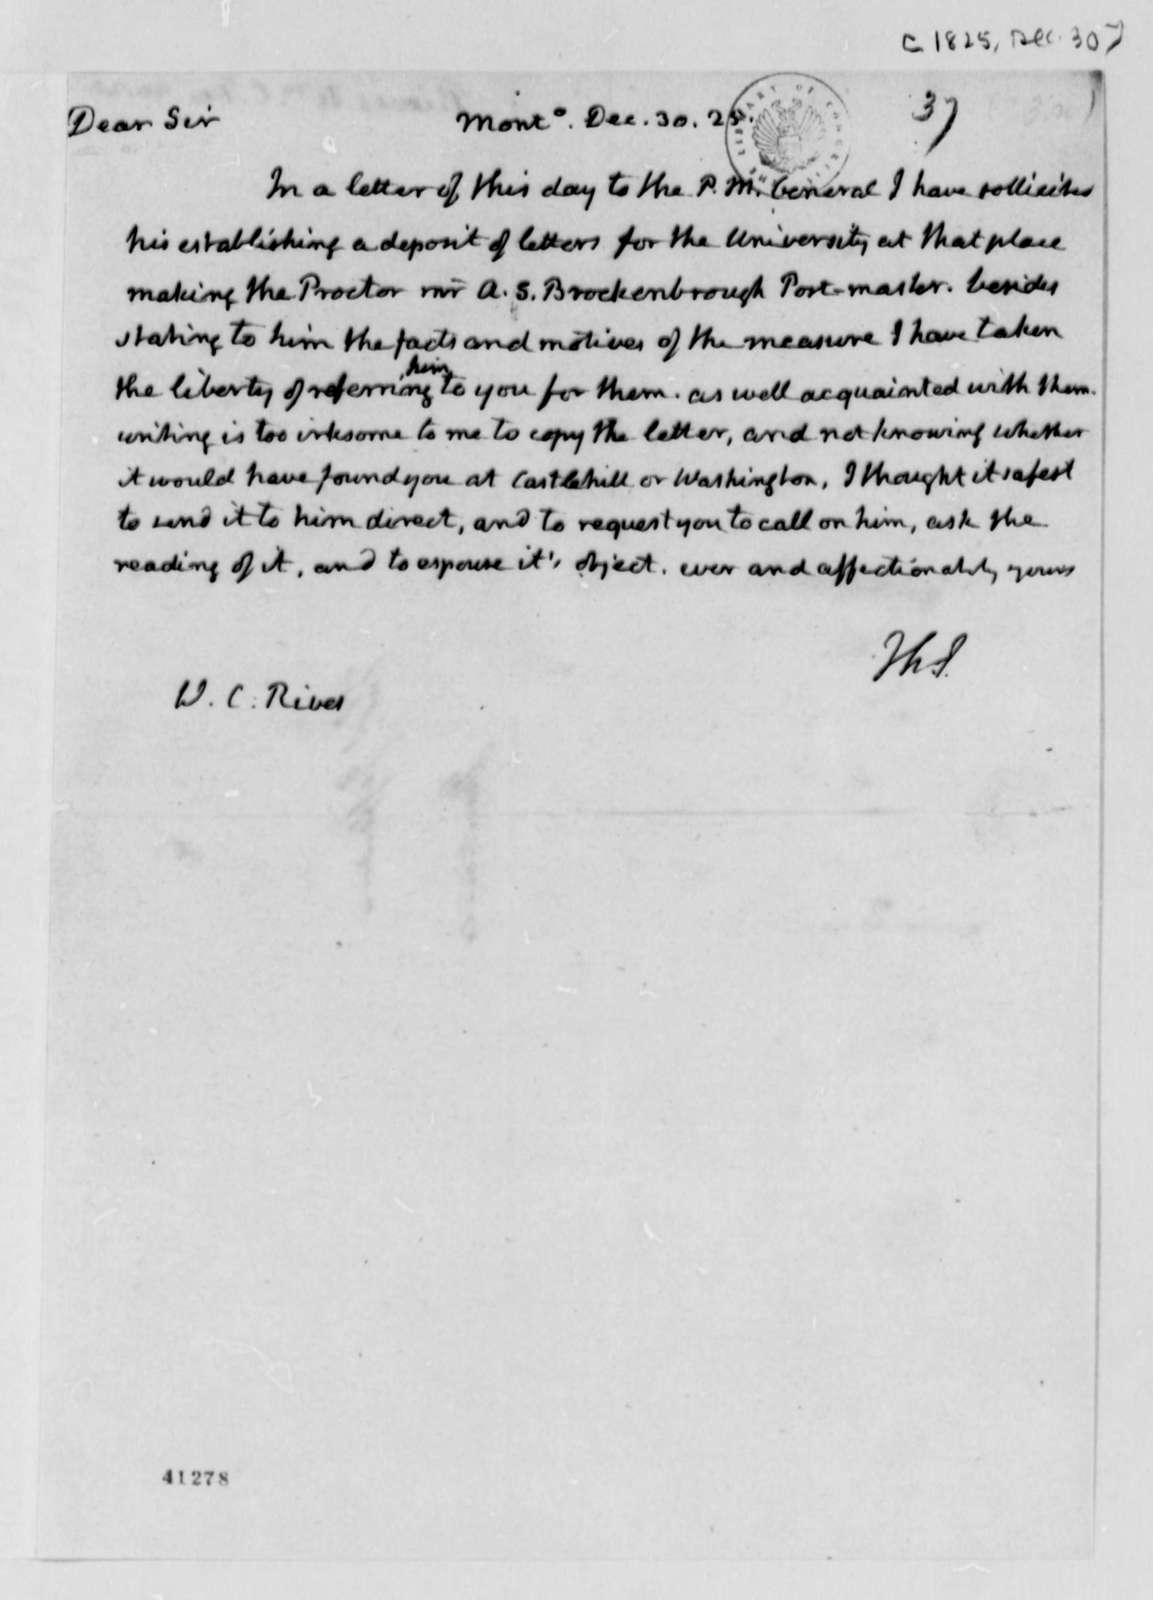 Thomas Jefferson to William Cabell Rives, December 30, 1825